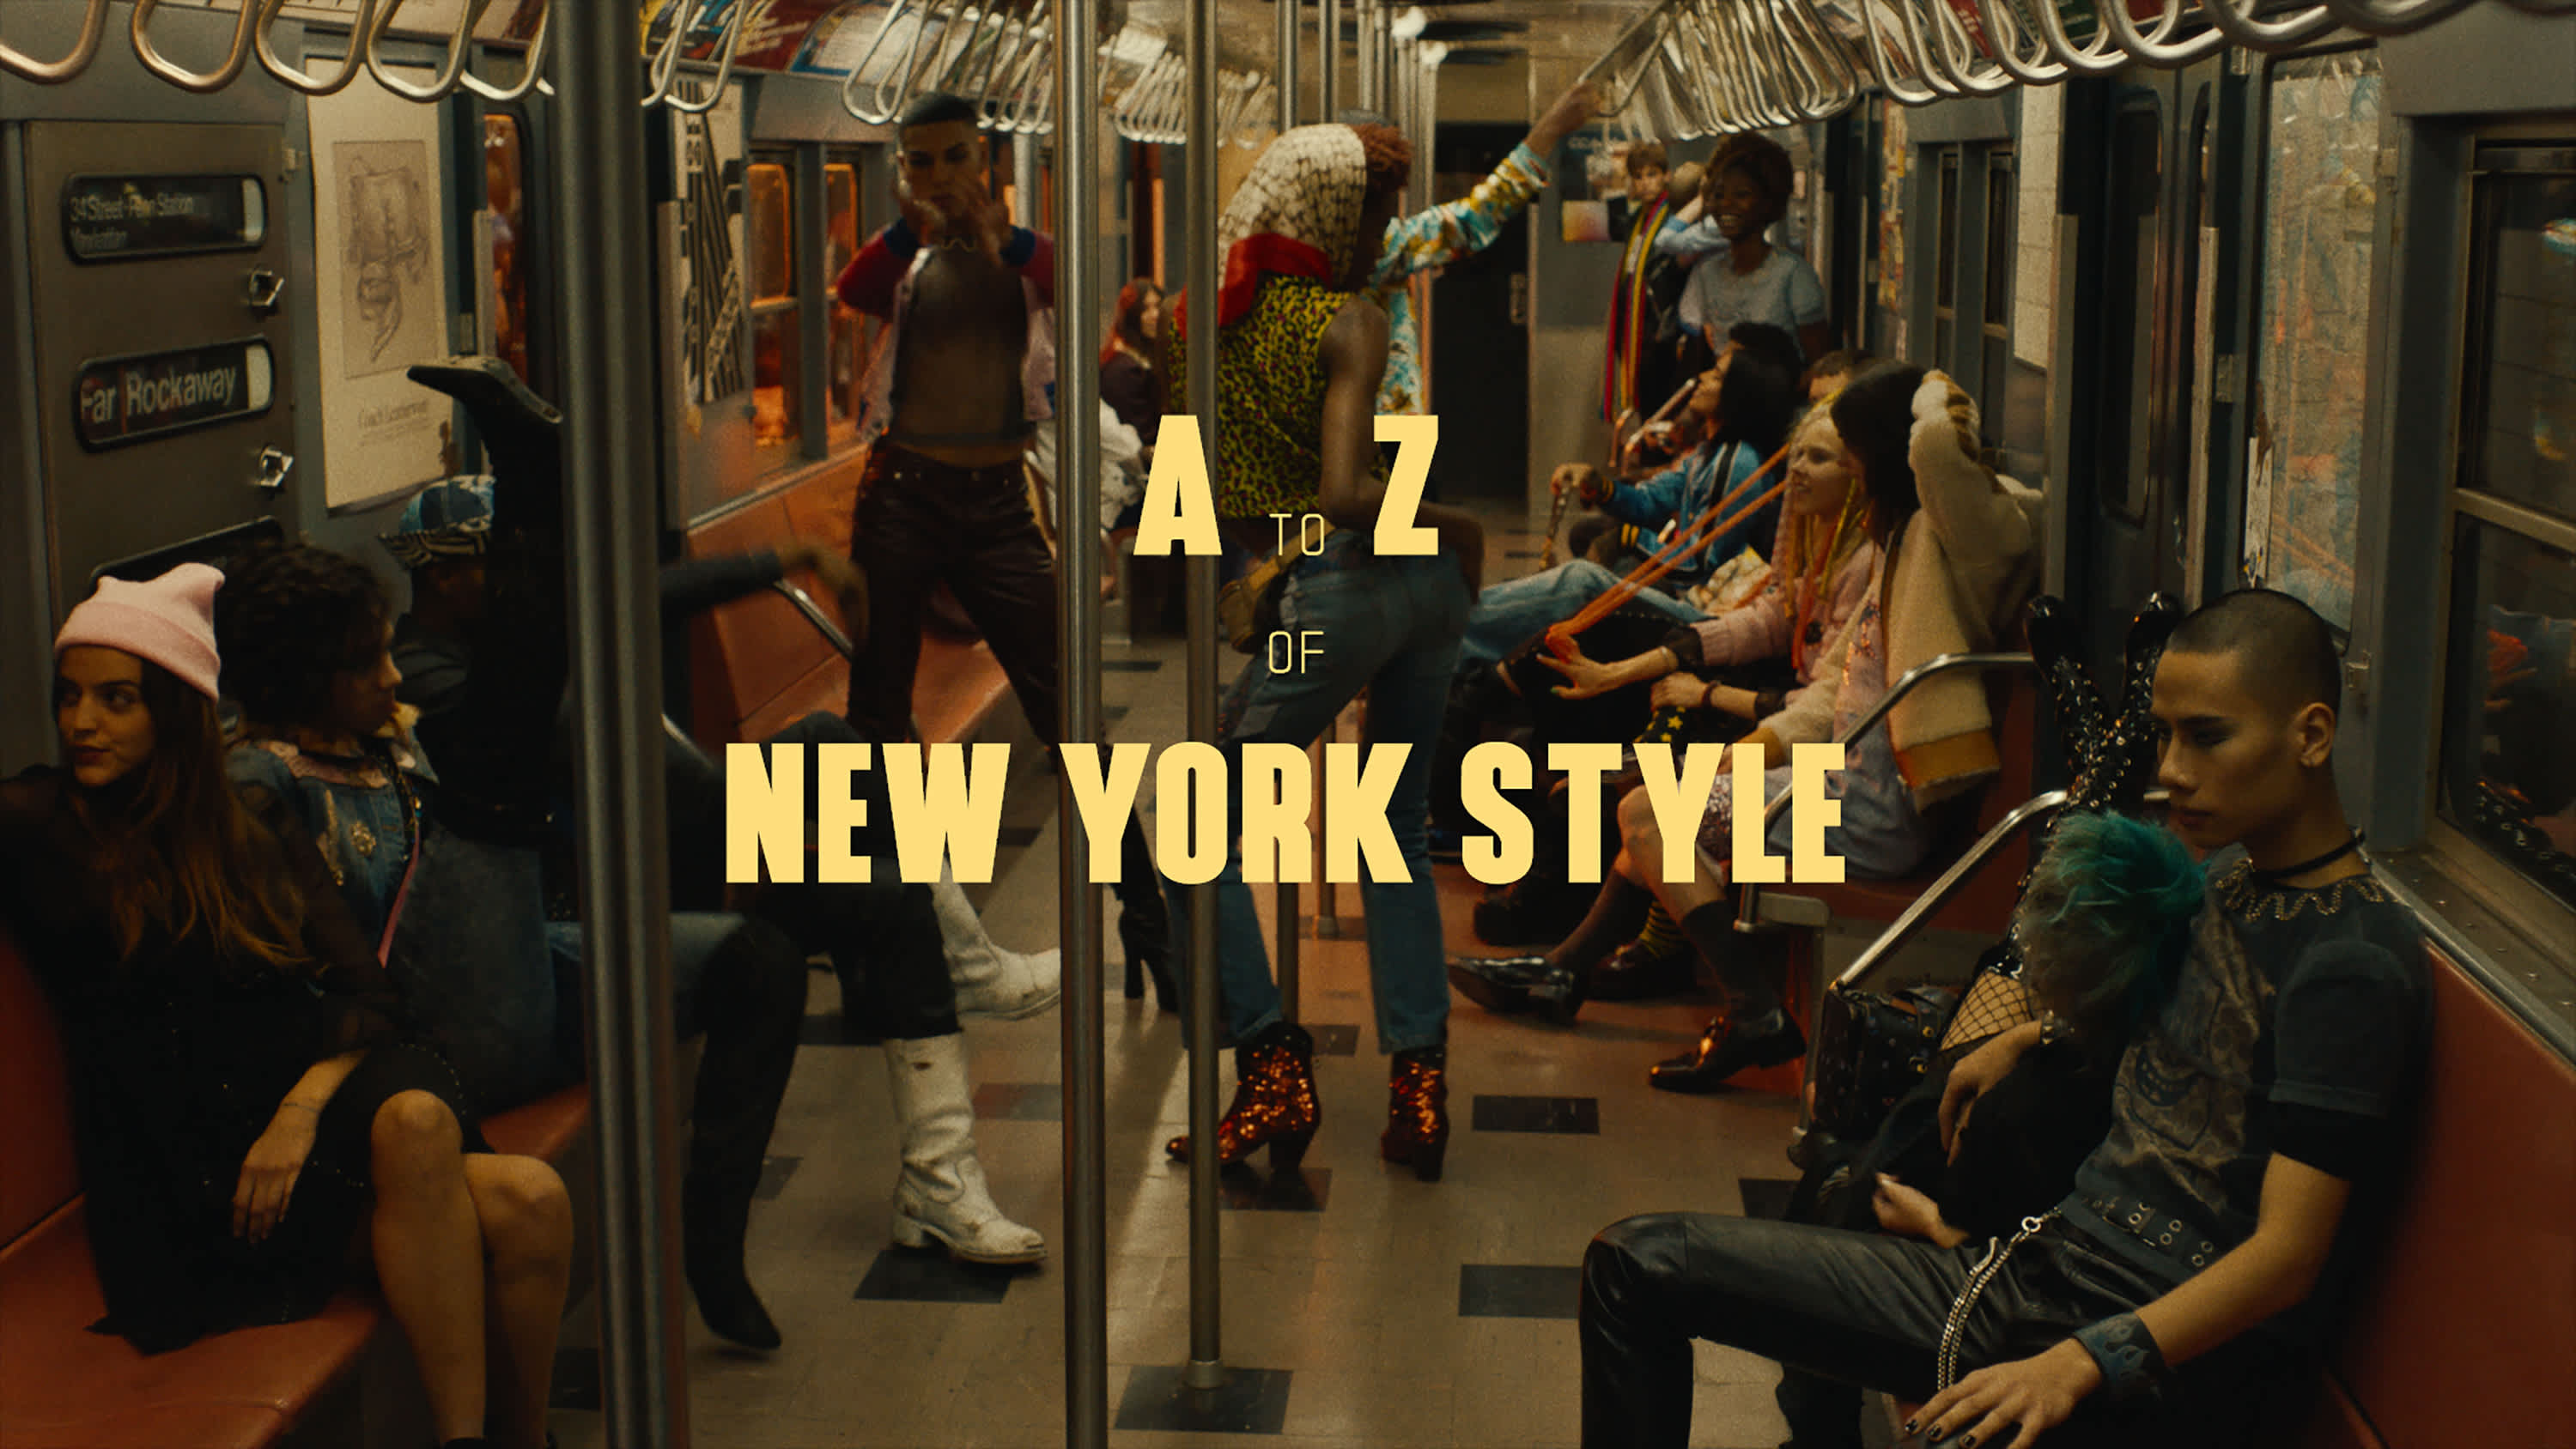 A-Z of New York Style